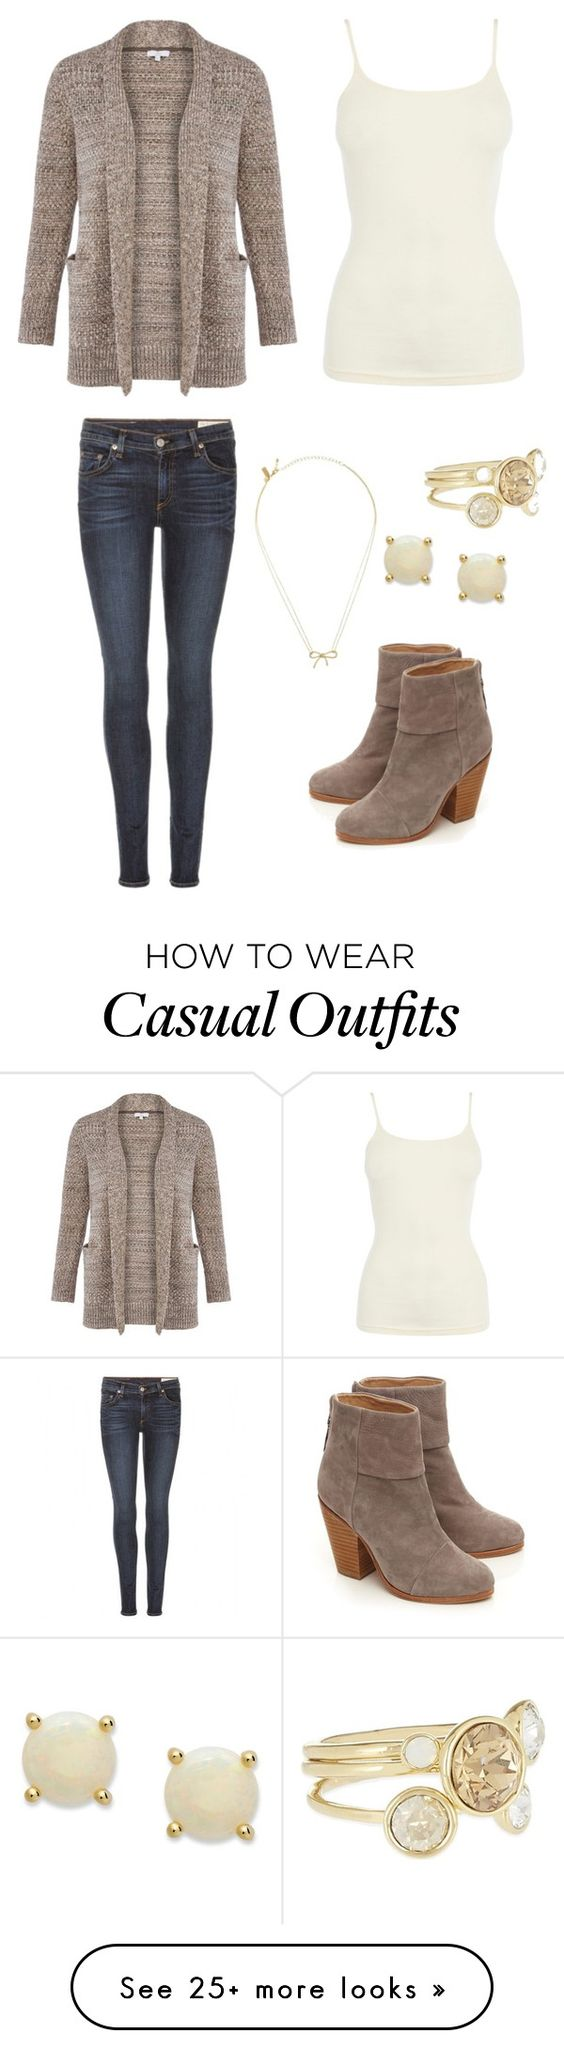 """""""Brown sweater - Casual"""" by brittjade on Polyvore featuring rag & bone, Warehouse, CC, Ted Baker, Victoria Townsend and Kate Spade"""